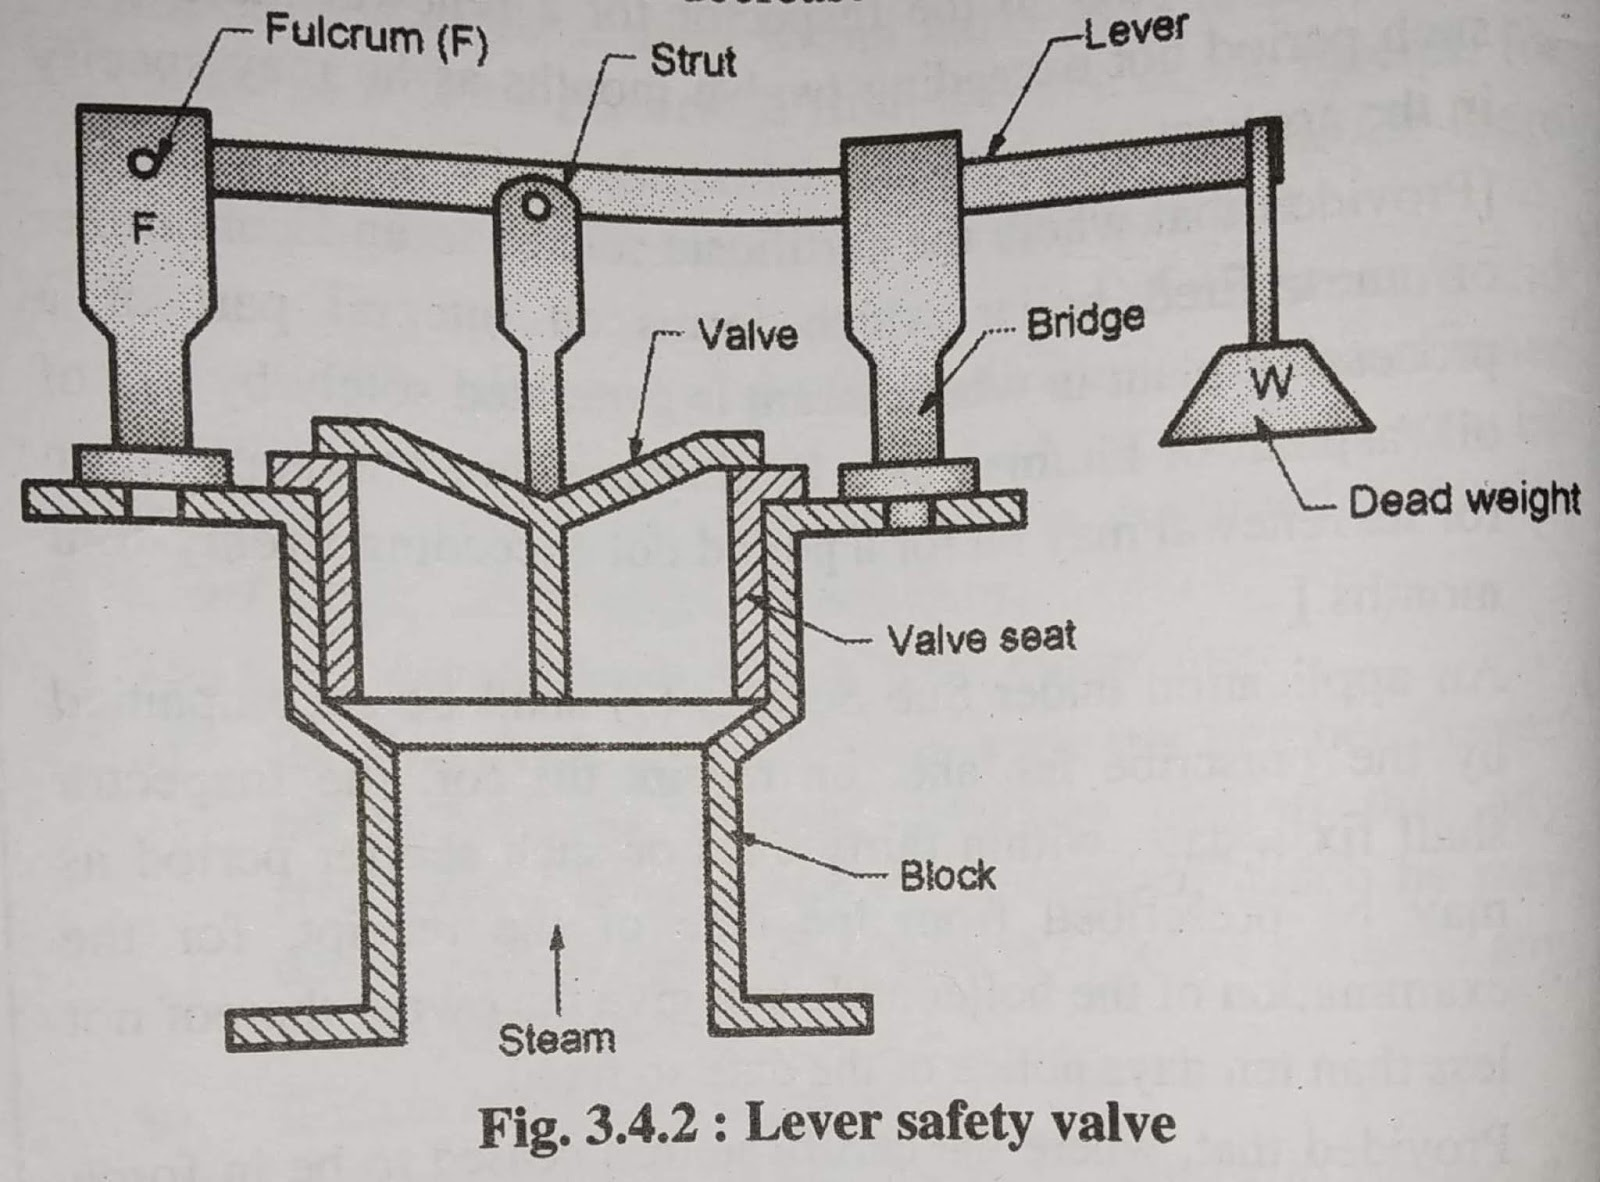 medium resolution of lever safety valve assembly drawing